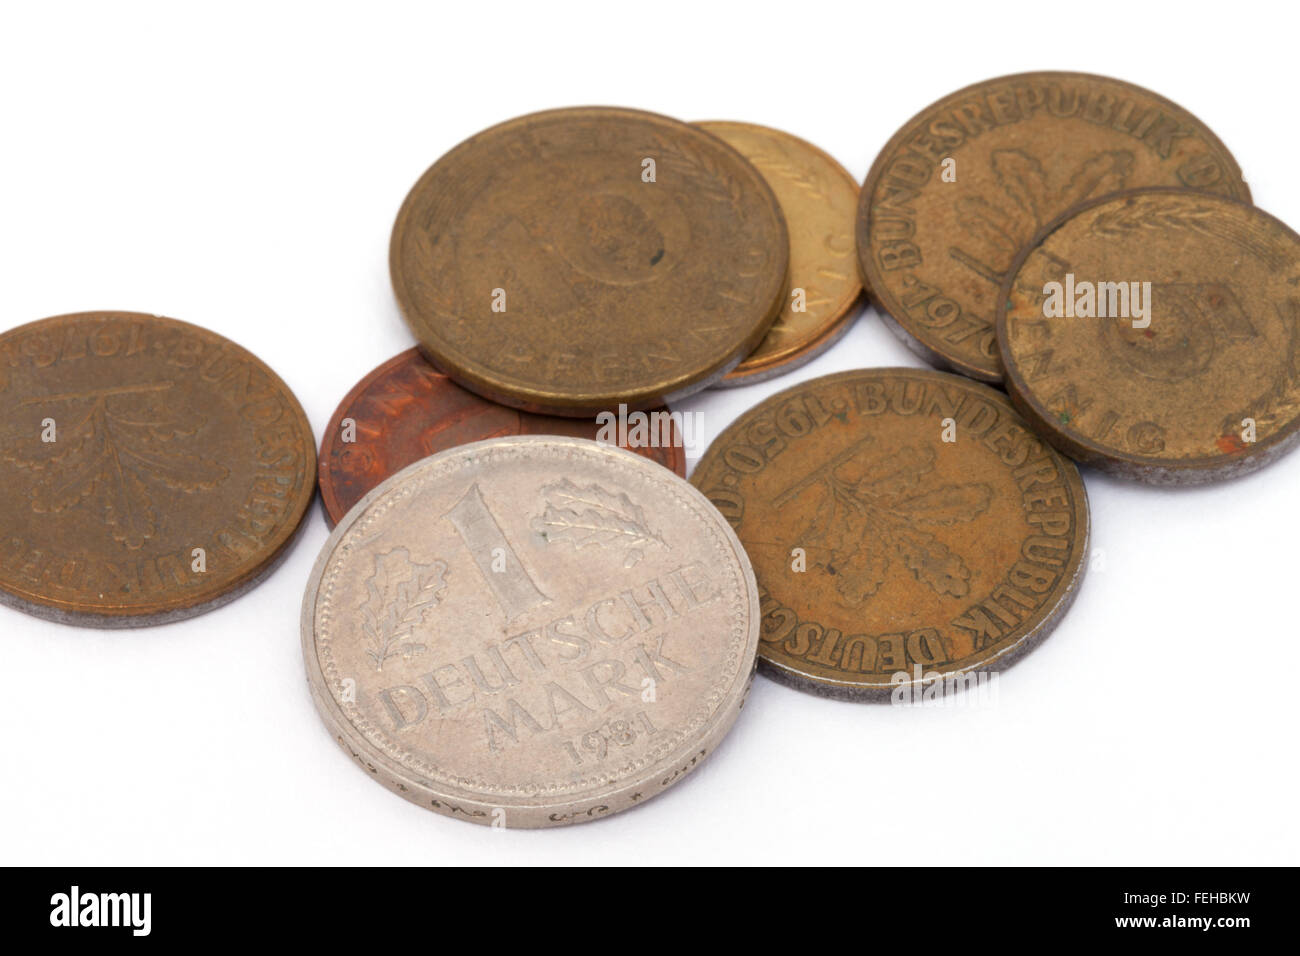 Old german deutsche mark coins from the pre-euro era - - Stock Image